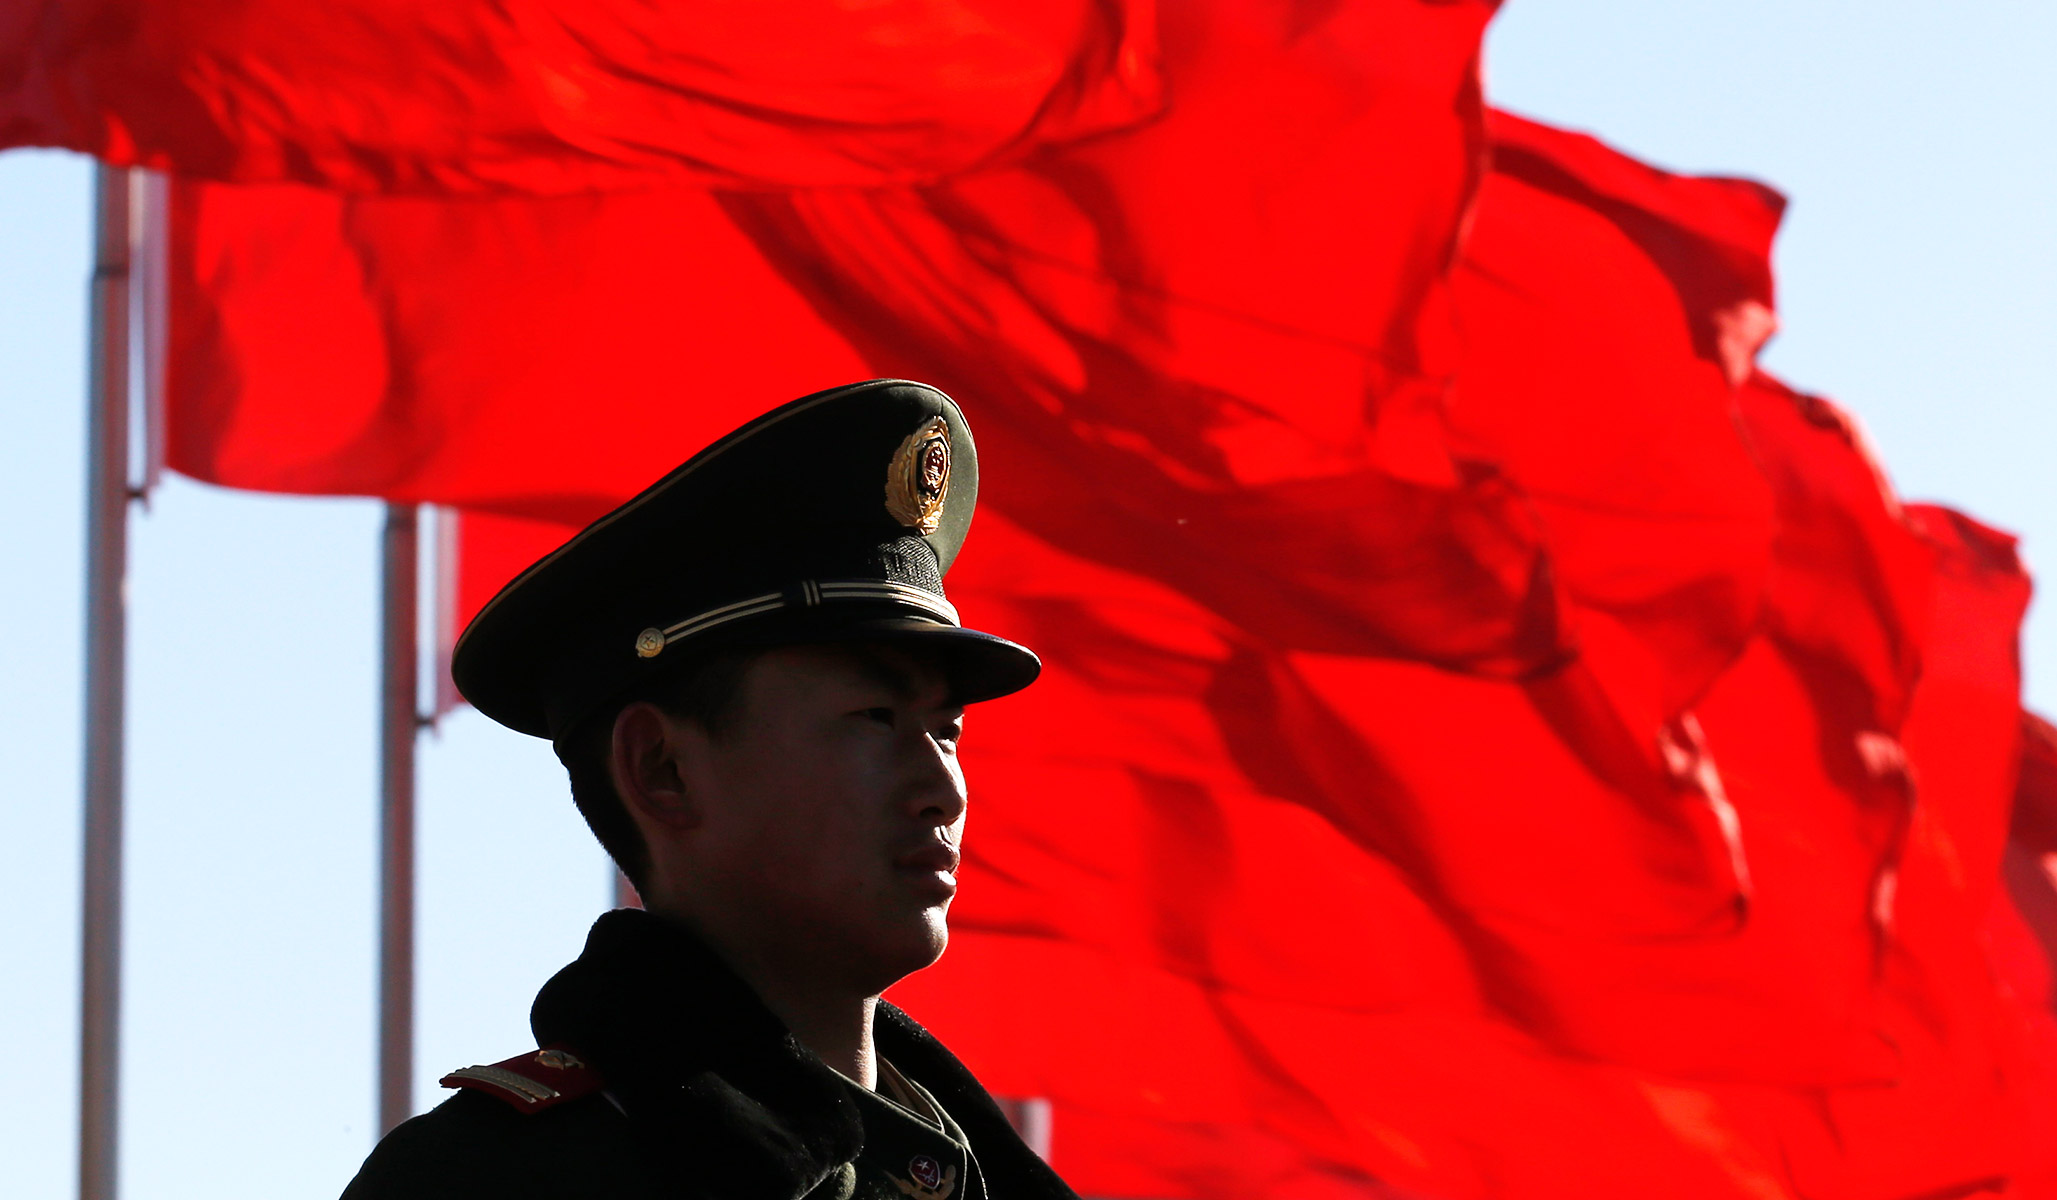 We Shouldn't Ignore Systemic Discrimination in China